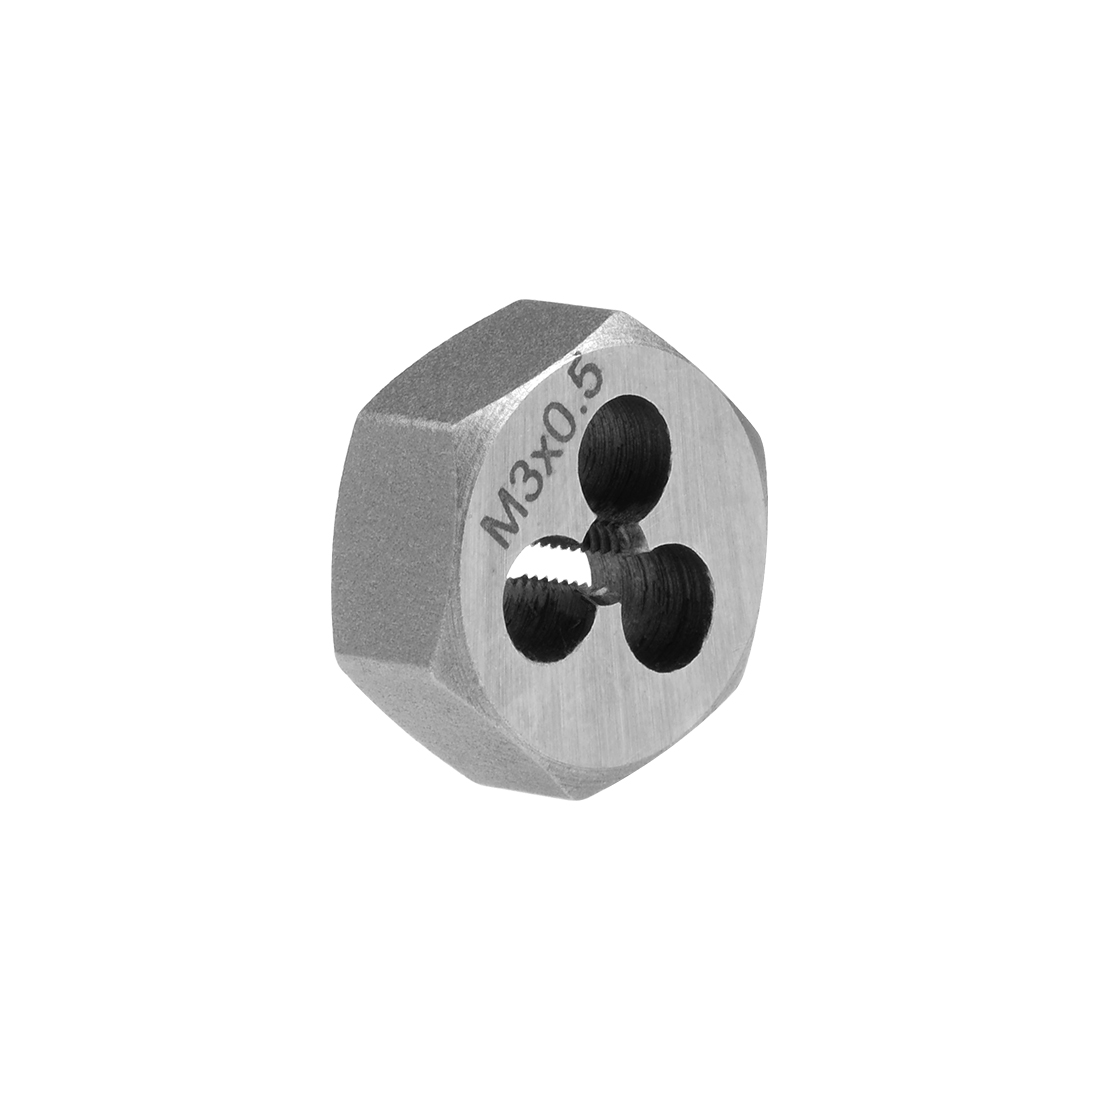 M3 x 0.5 Pitch Carbon Steel Metric Hexagon Taper Pipe Hex Rethreading Die